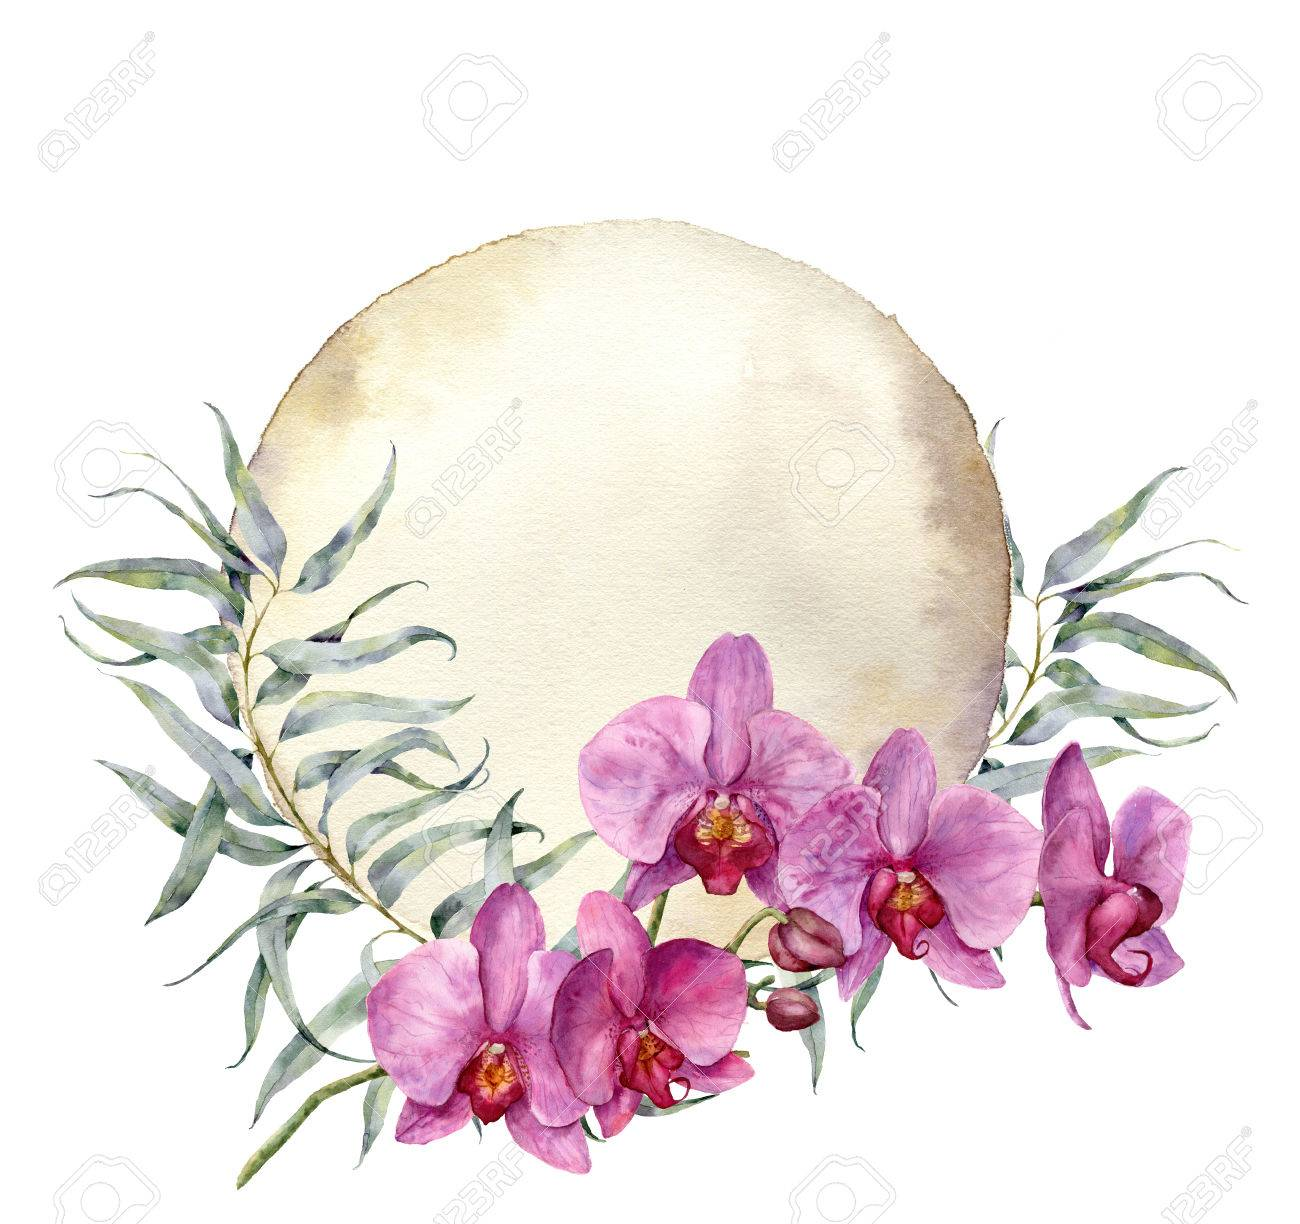 Watercolor Vintage Card With Orchids And Eucalyptus Leaves Hand Stock Photo Picture And Royalty Free Image Image 75388256